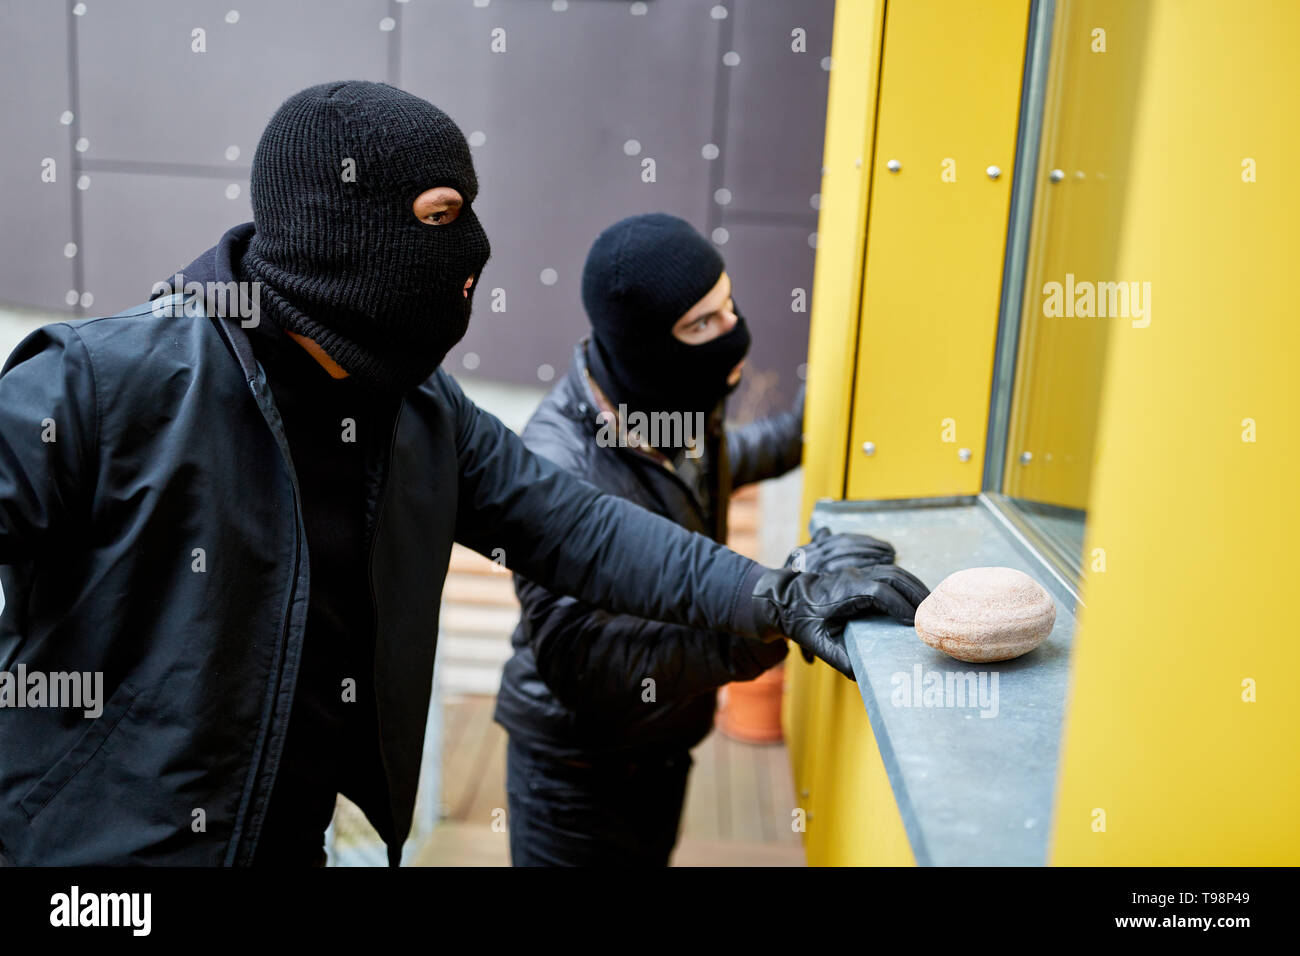 Two burglars watch the window of a detached house - Stock Image